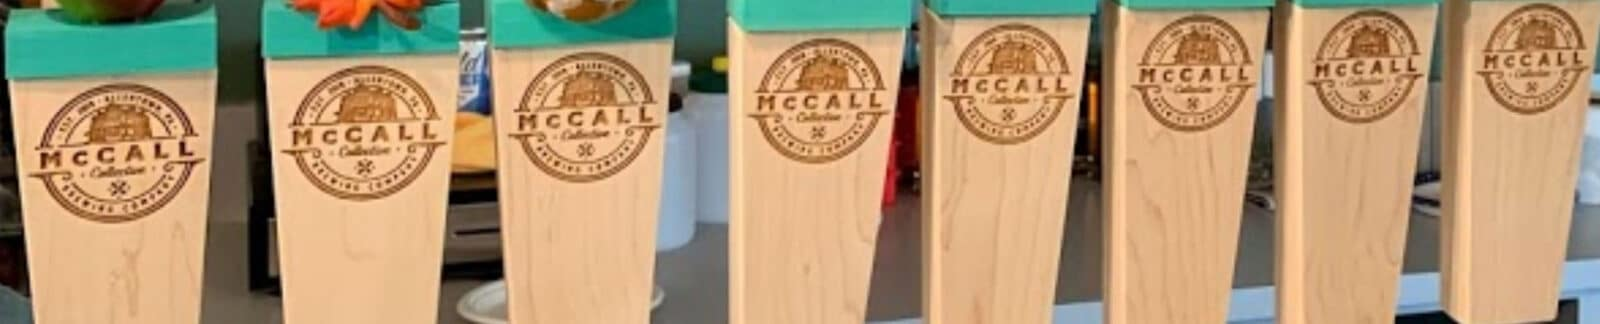 McCall Collective tap header